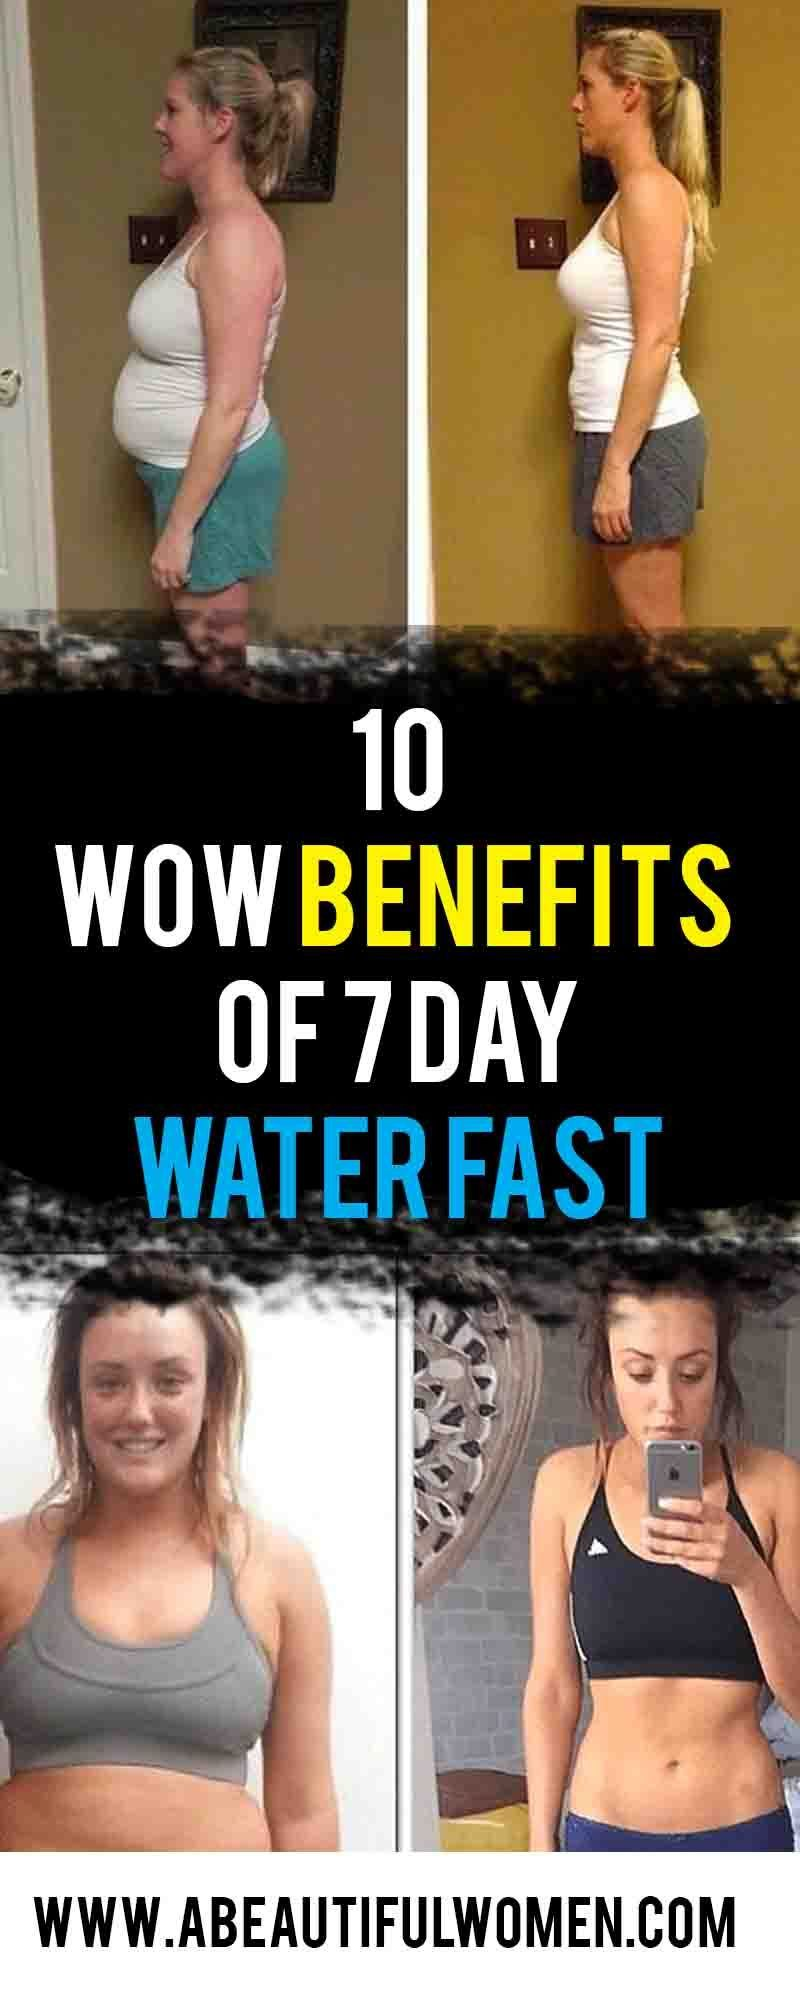 10 Wow Benefits Of 7 Day Water Fast With Images Water Fasting